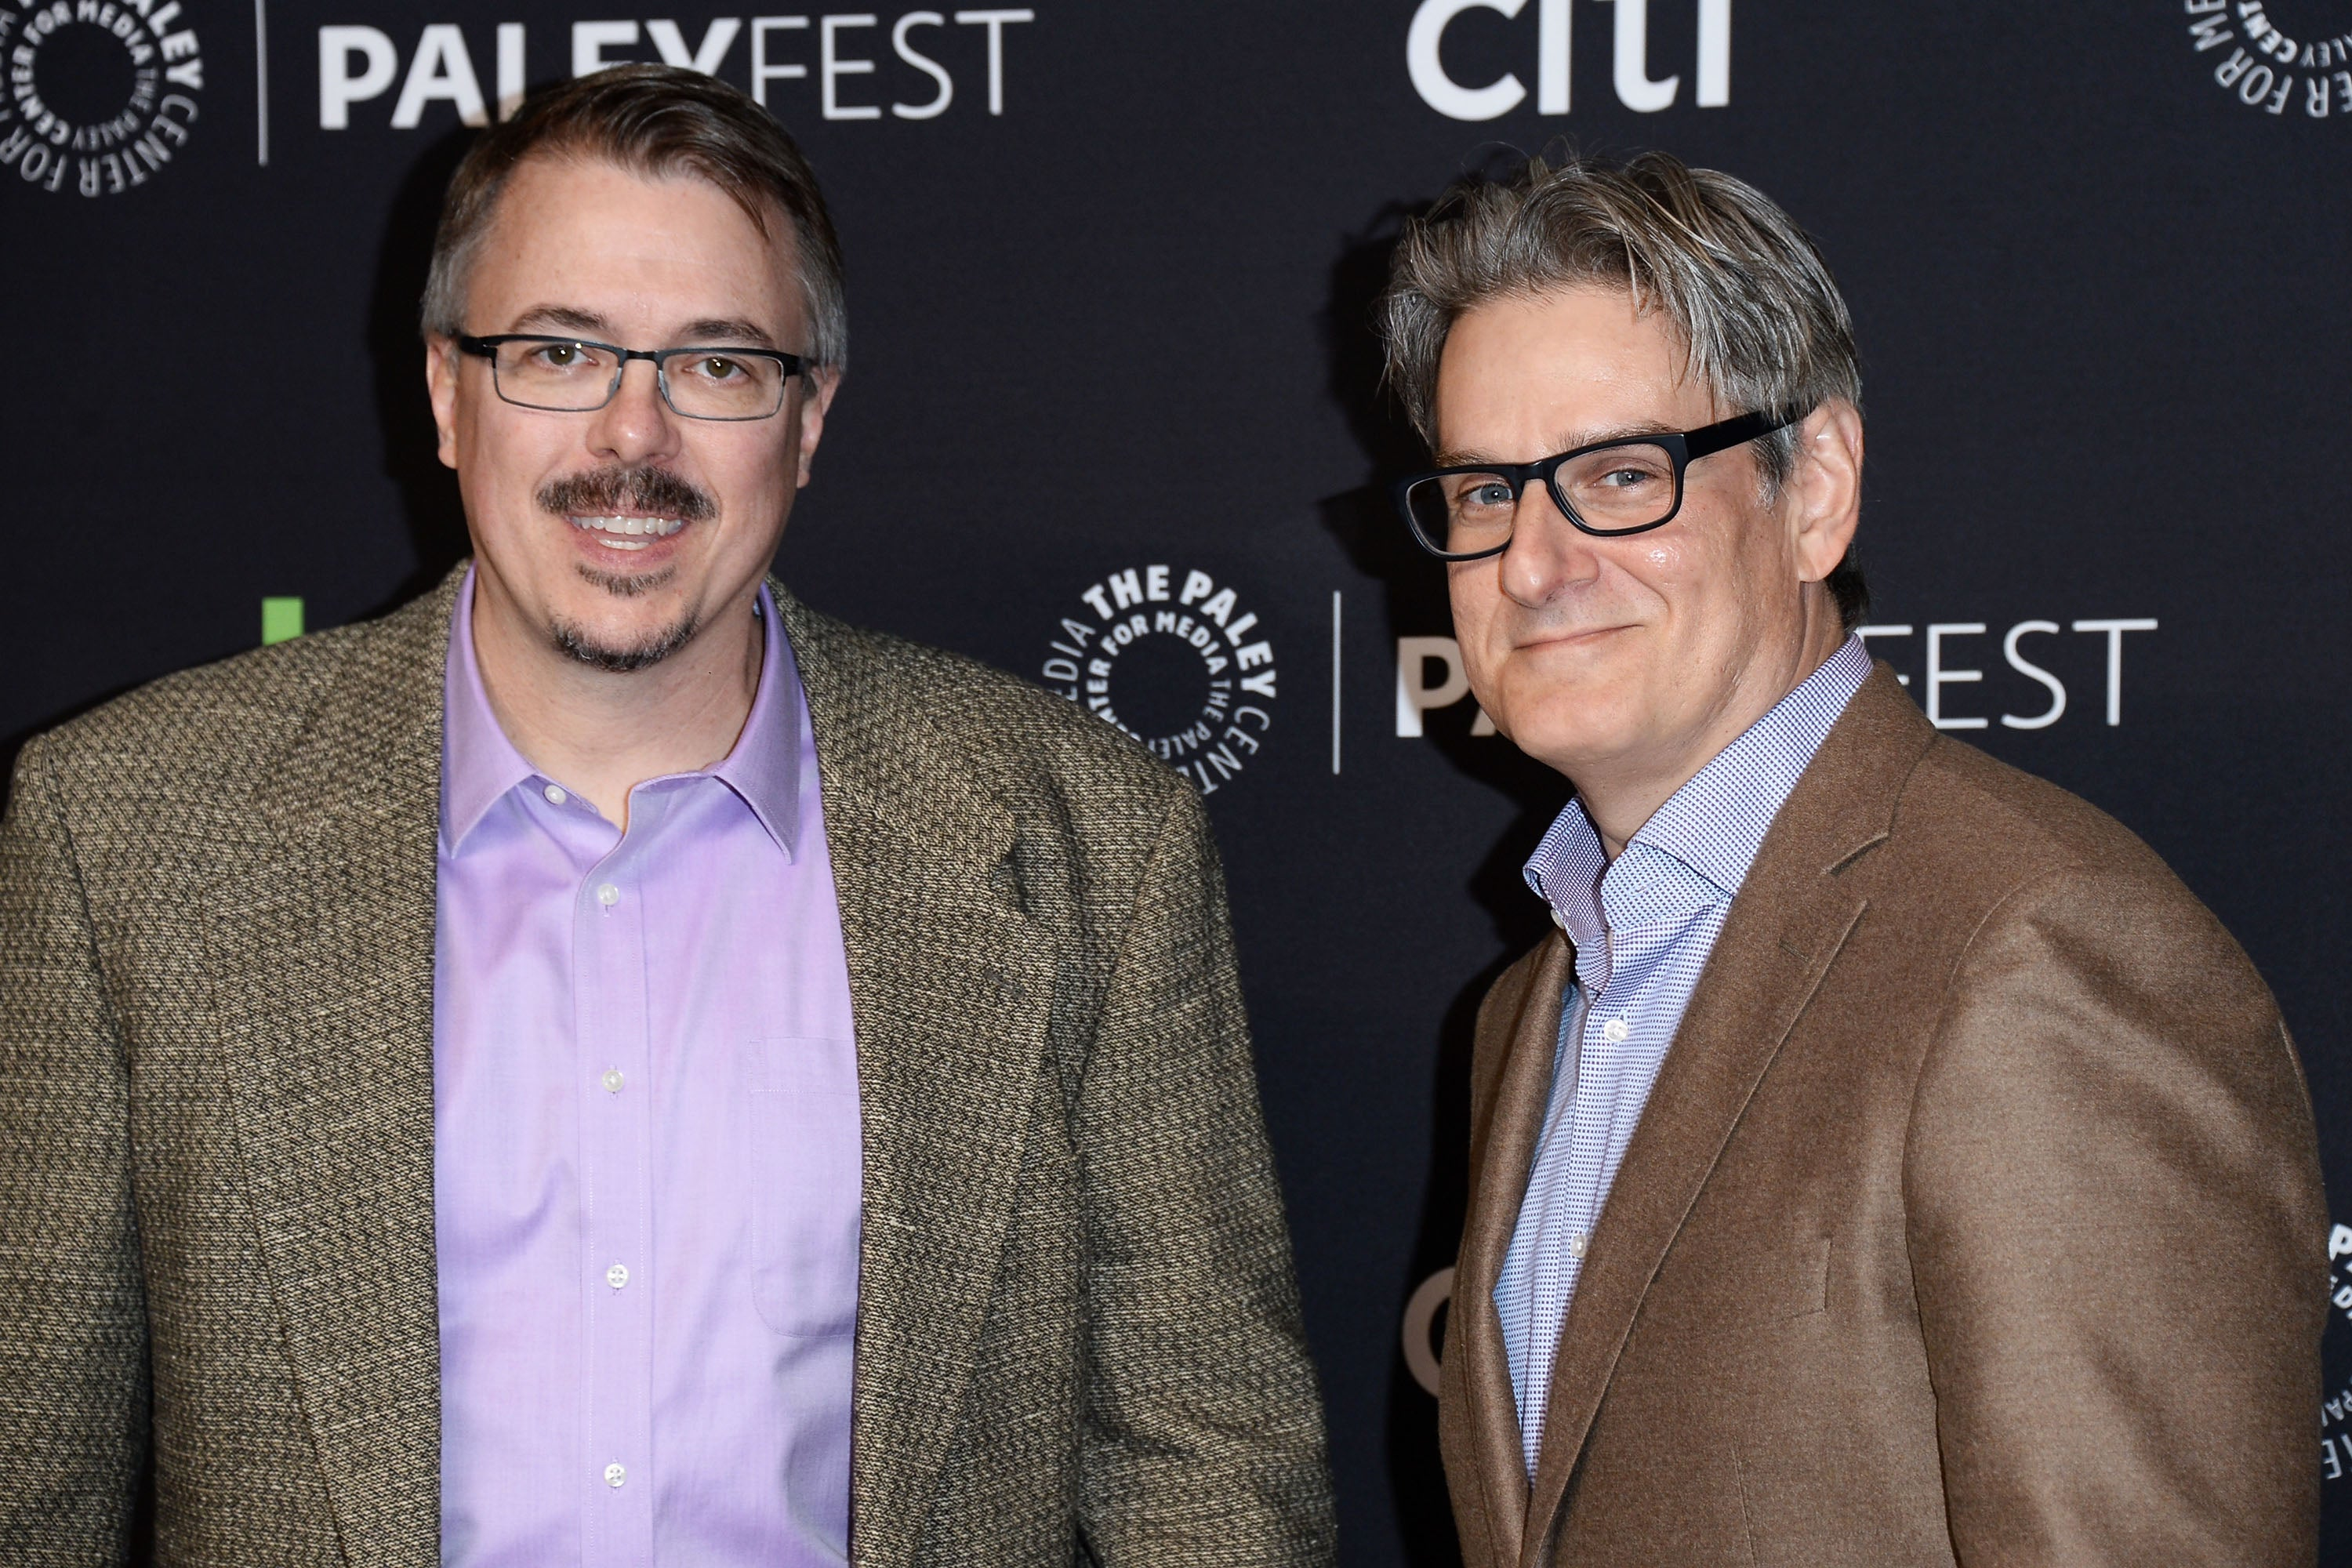 Vince Gilligan and Peter Gould, creators of the TV series Better Call Saul